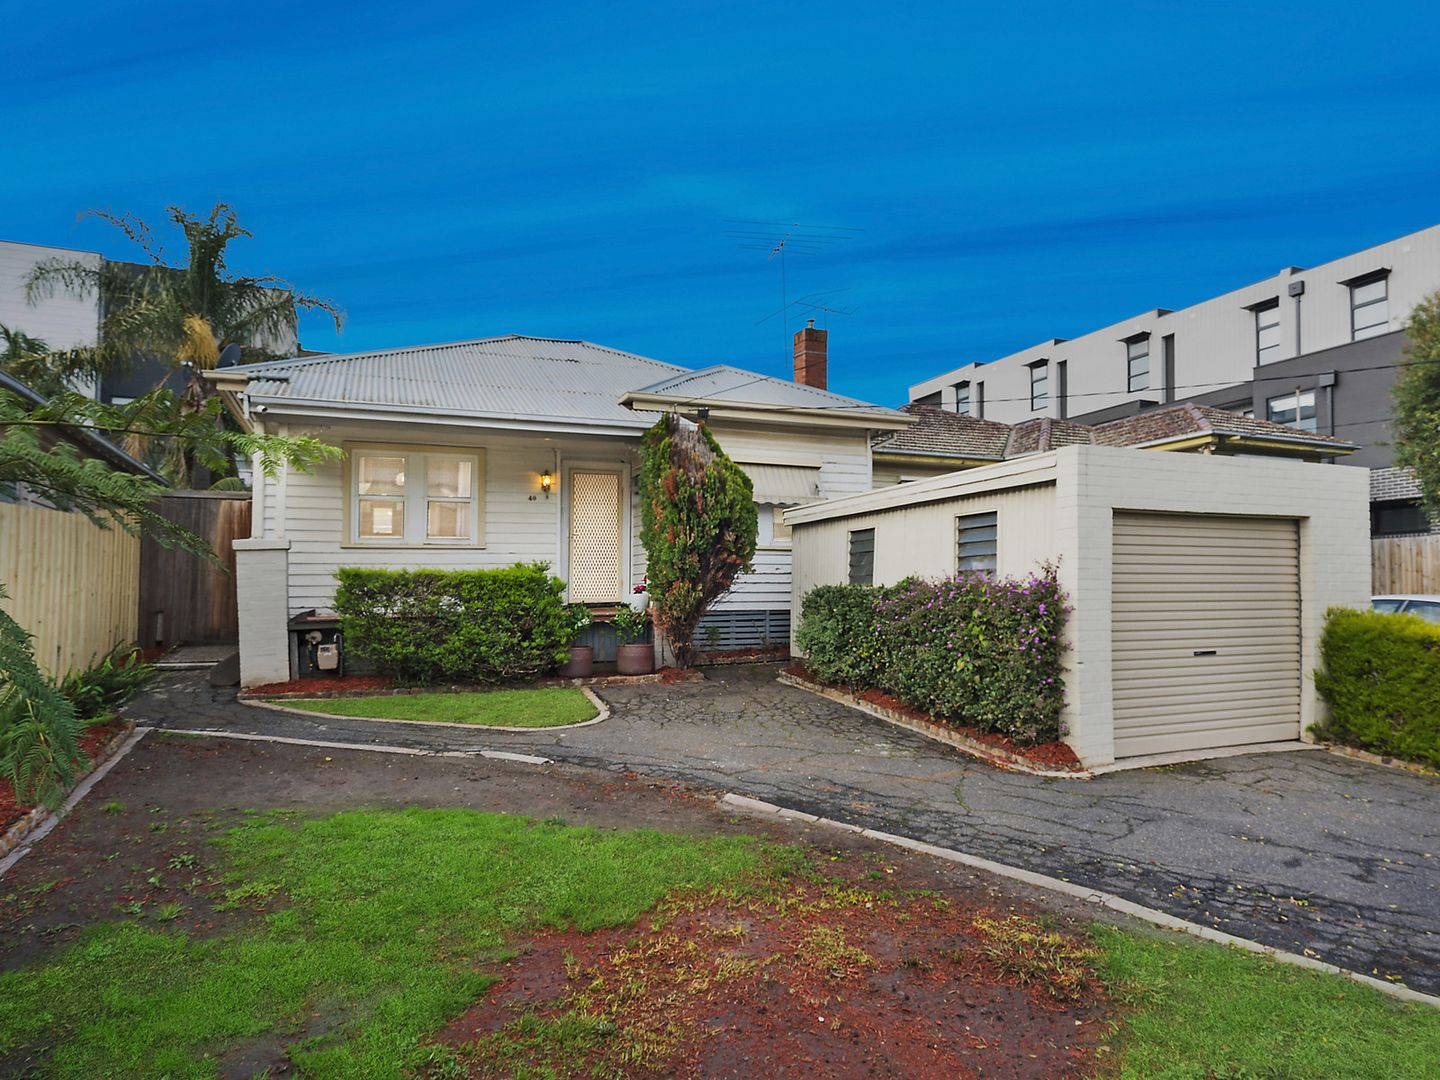 3 bedrooms House in 40 Burgundy Street PASCOE VALE VIC, 3044